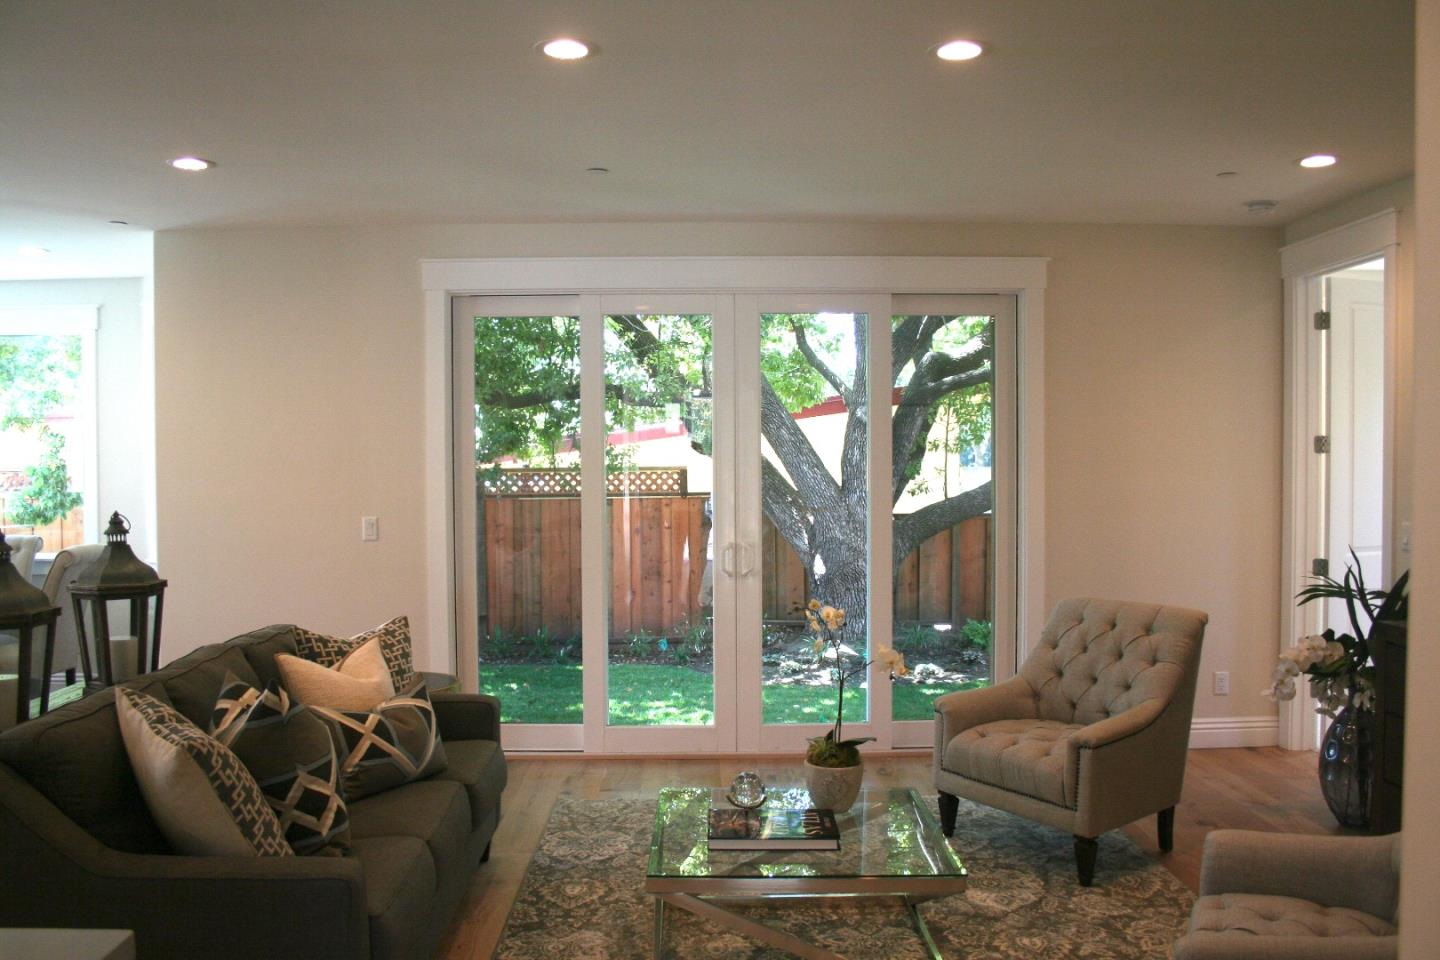 Additional photo for property listing at 1653 Arbor Drive  San Jose, California 95125 United States